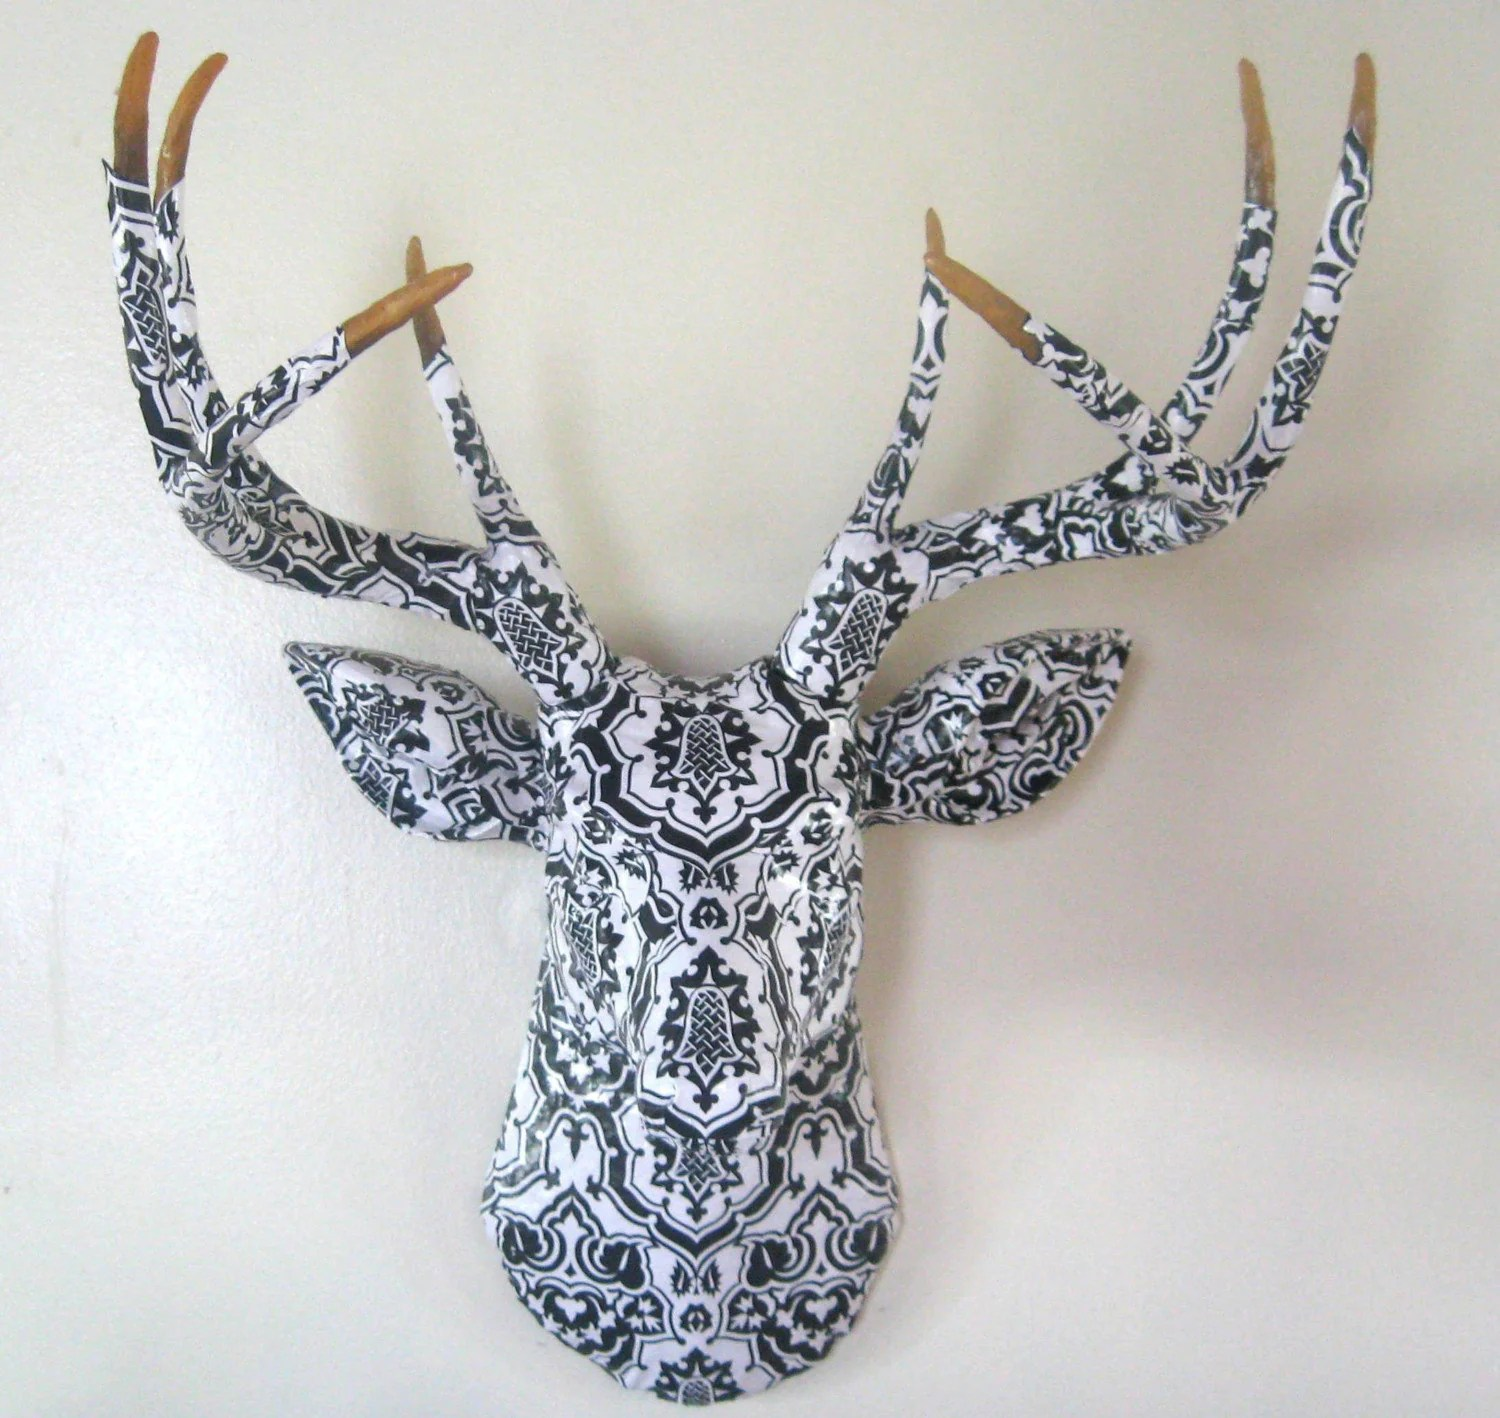 Faux Stag Head Let 39s Stay Decorative Faux Animal Heads For Your Home